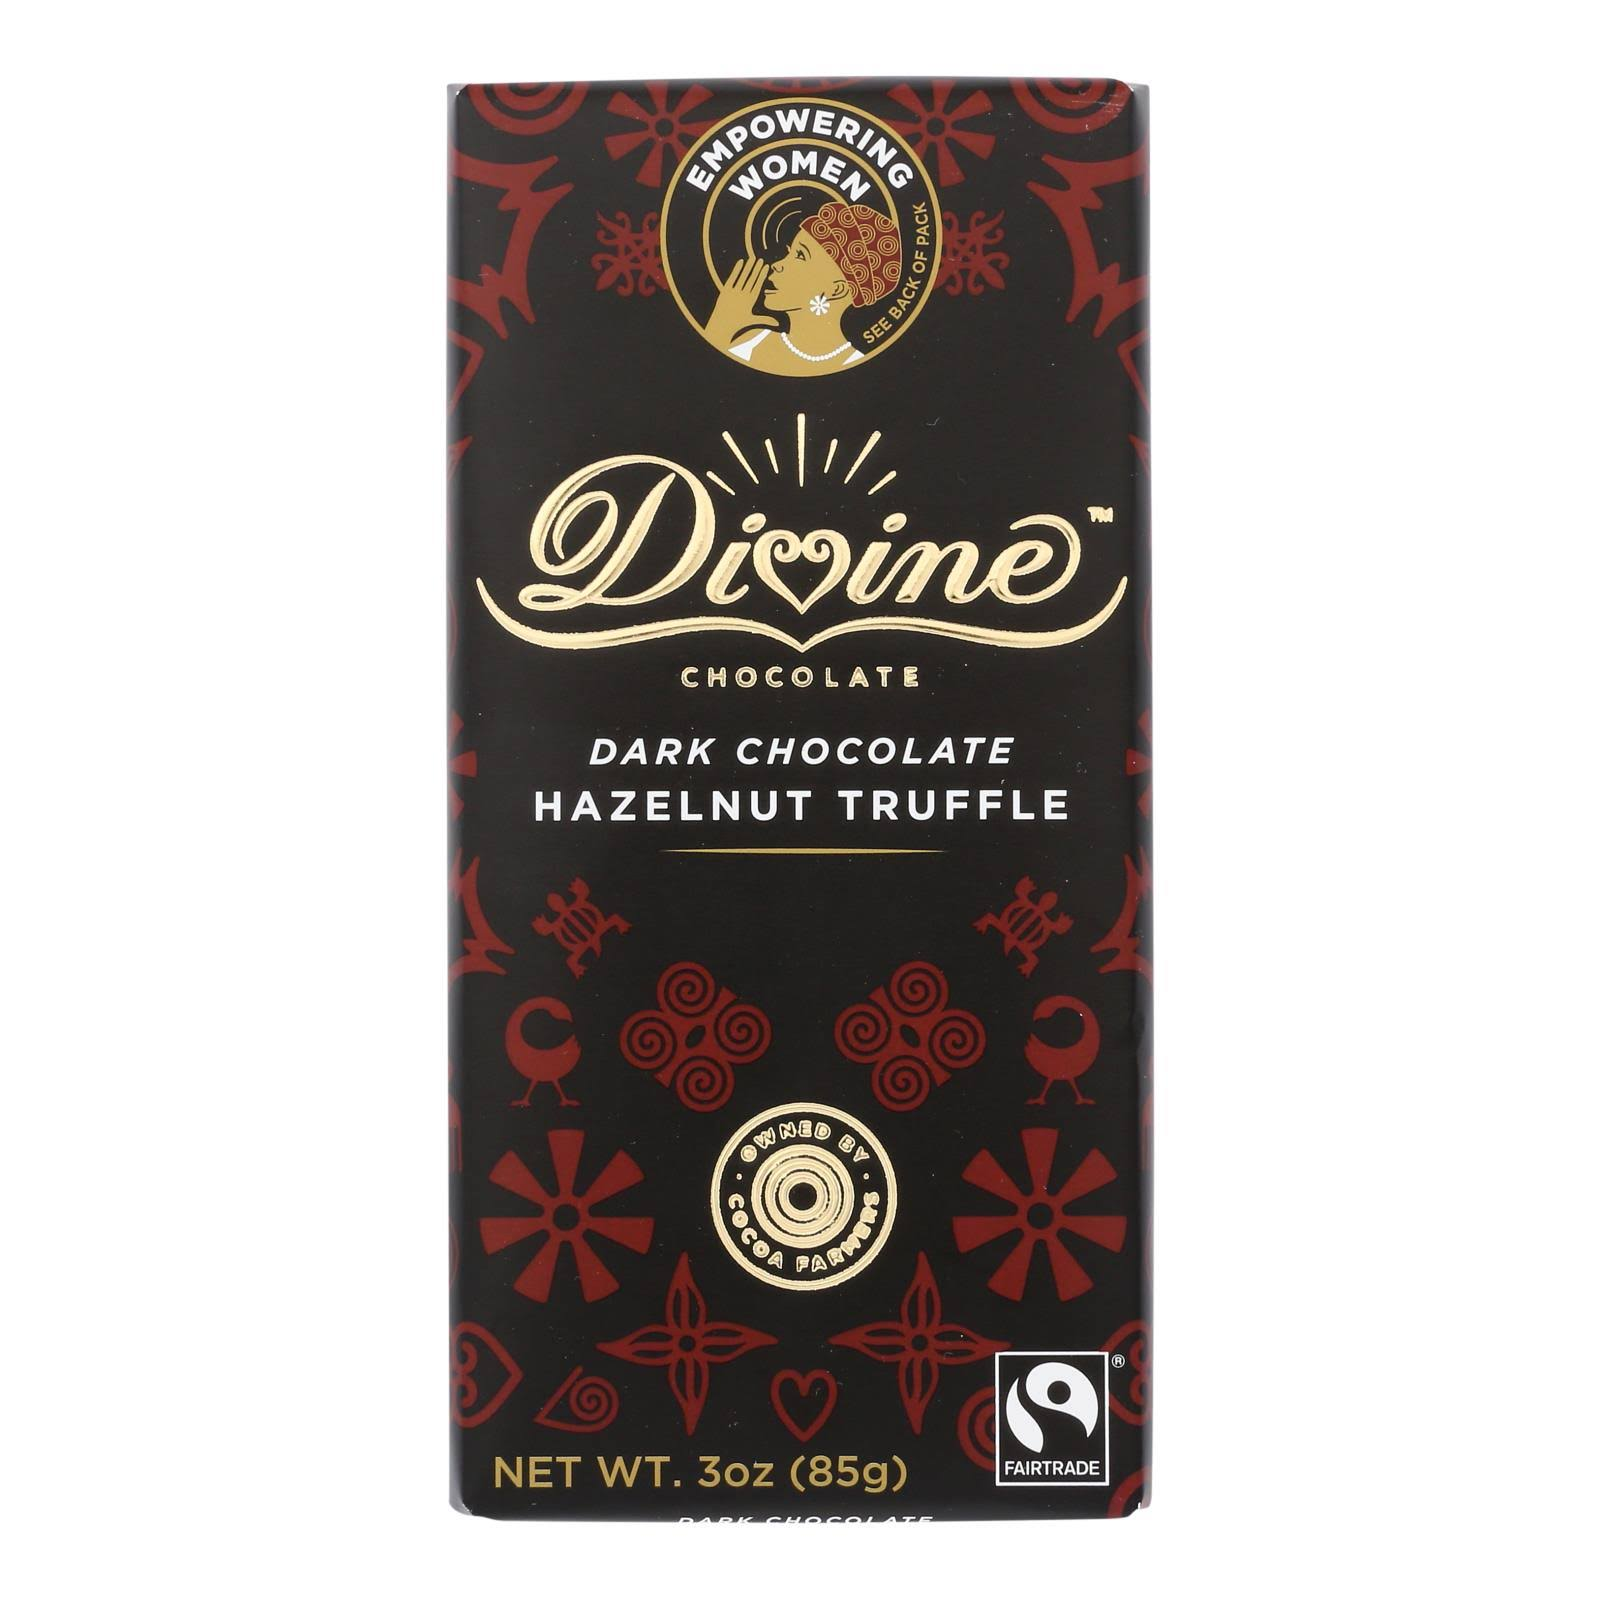 Divine Dark Chocolate Hazelnut Truffle, 3 oz